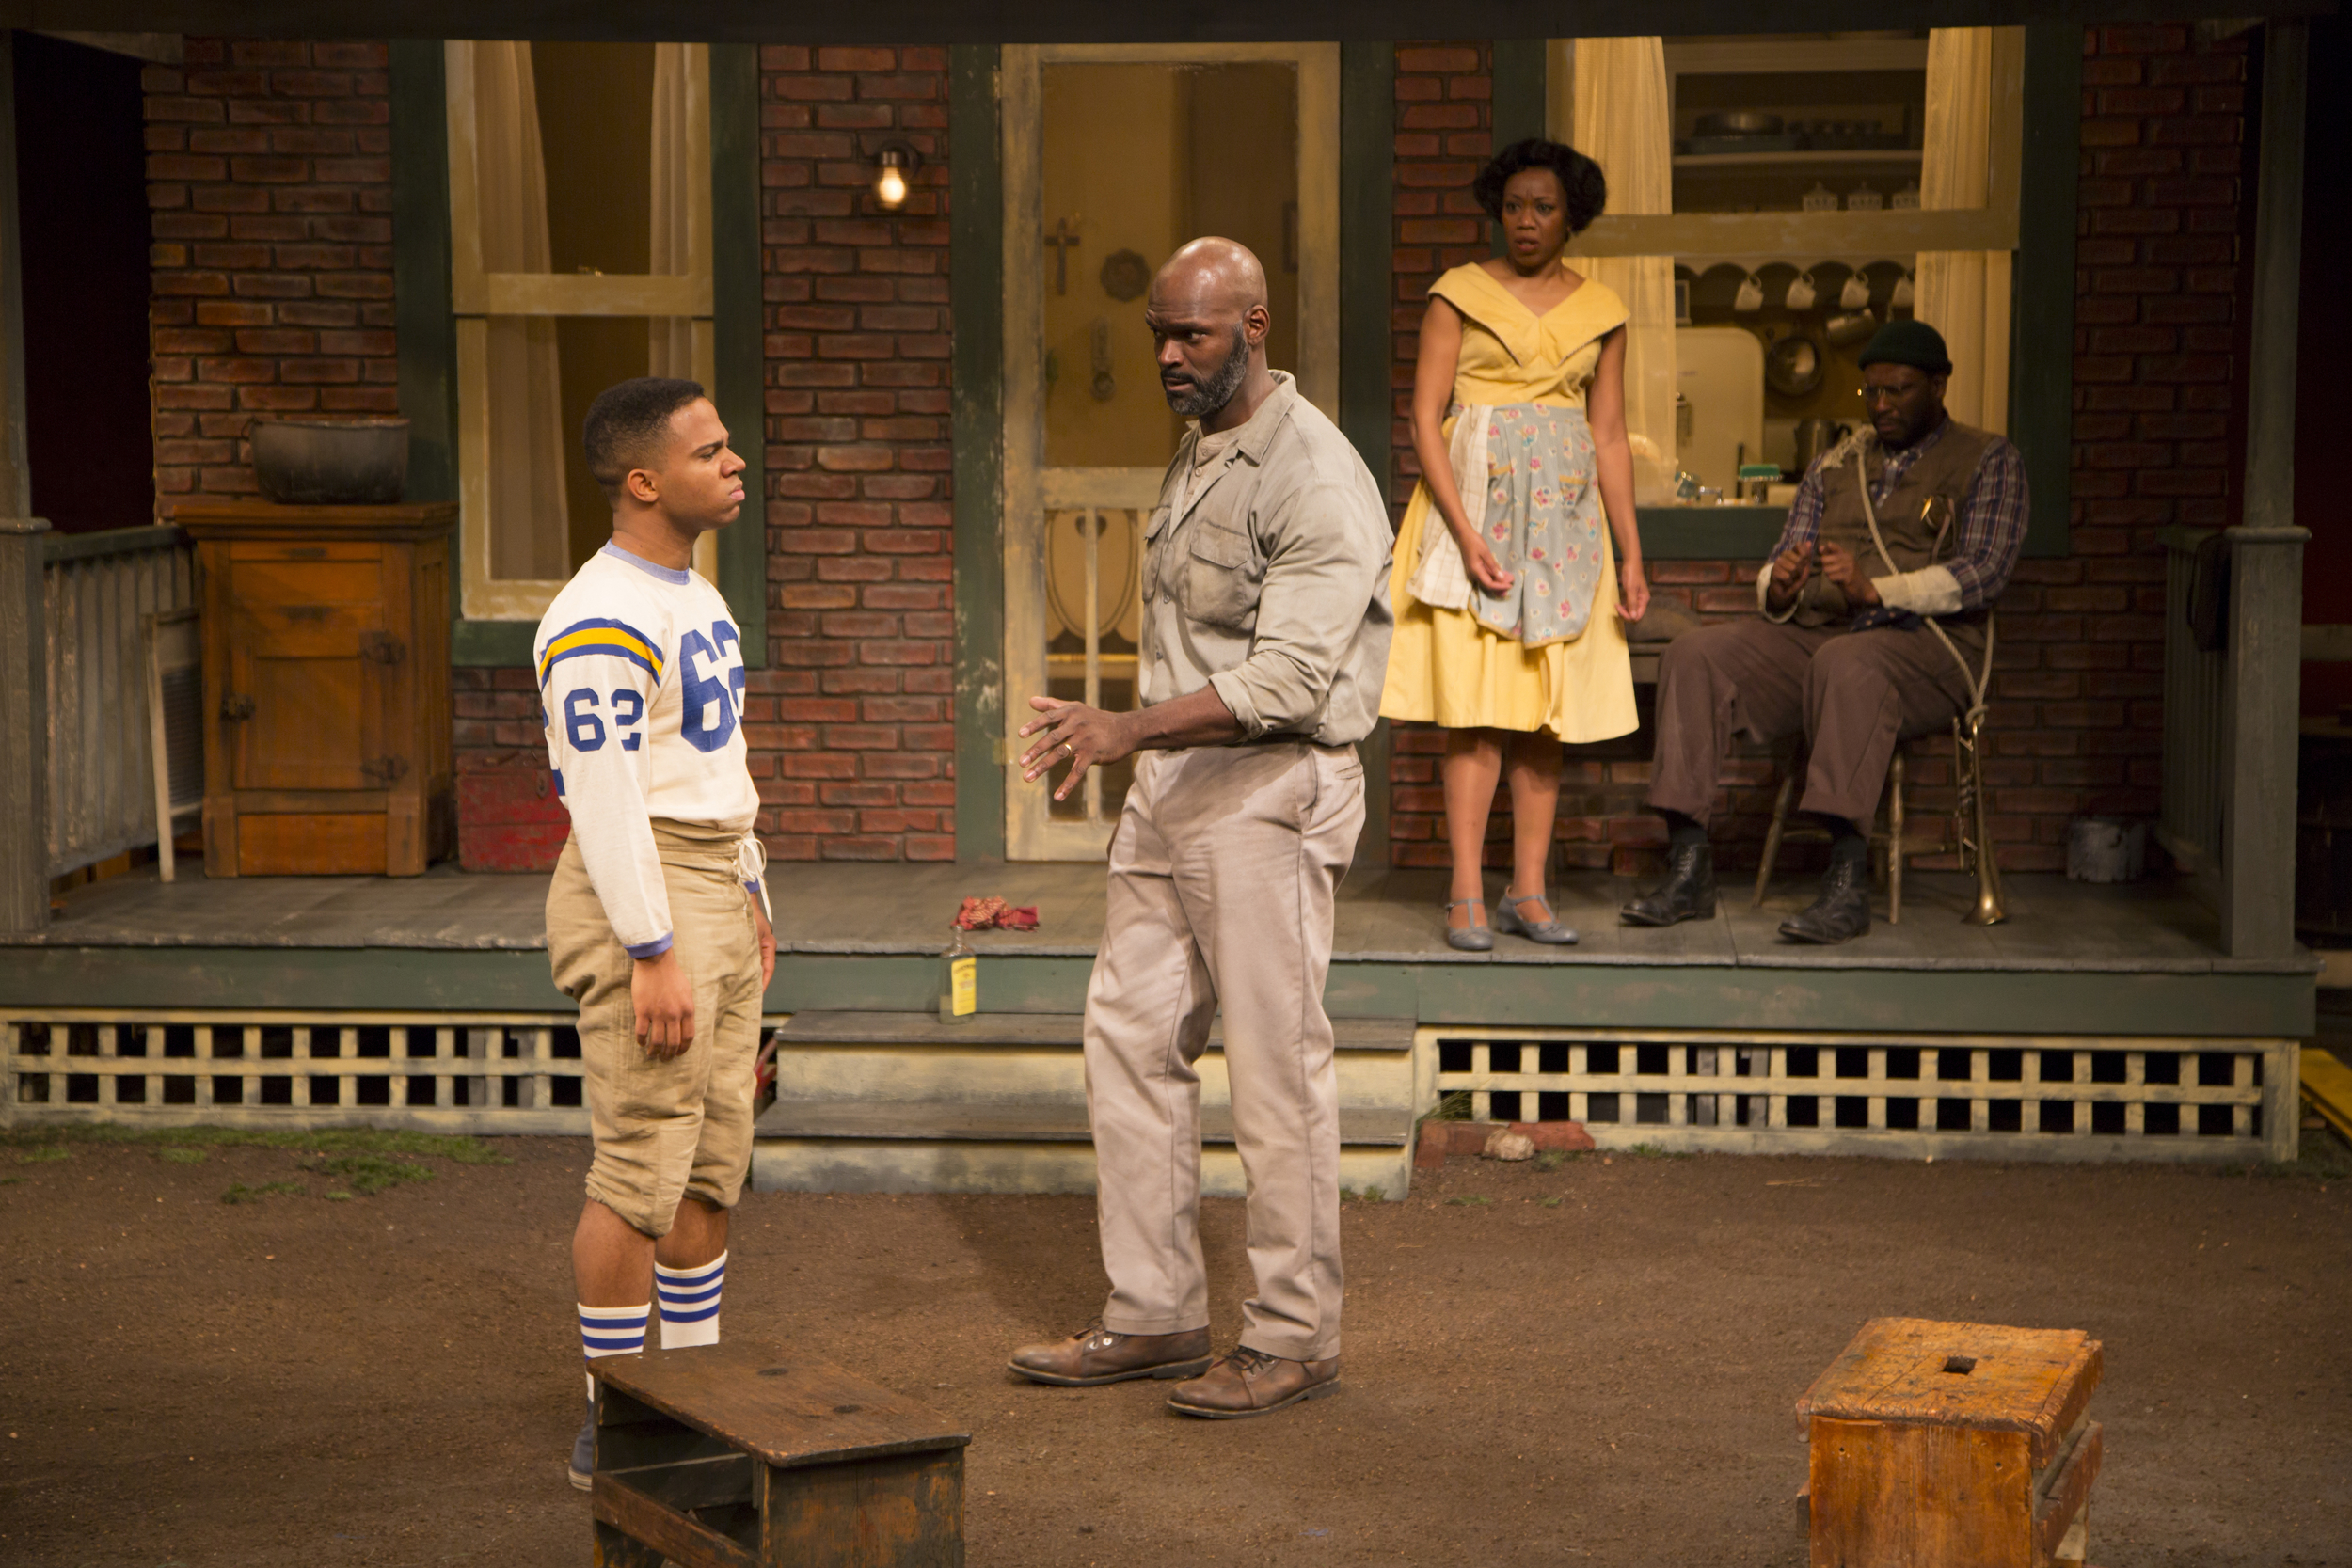 symbolism in fences by august wilson essay Through the play fences, august wilson intends to show how racial segregation and injustice can create hardships for families, a personal lack of self-esteem, and lead to uncontrollable circumstances.